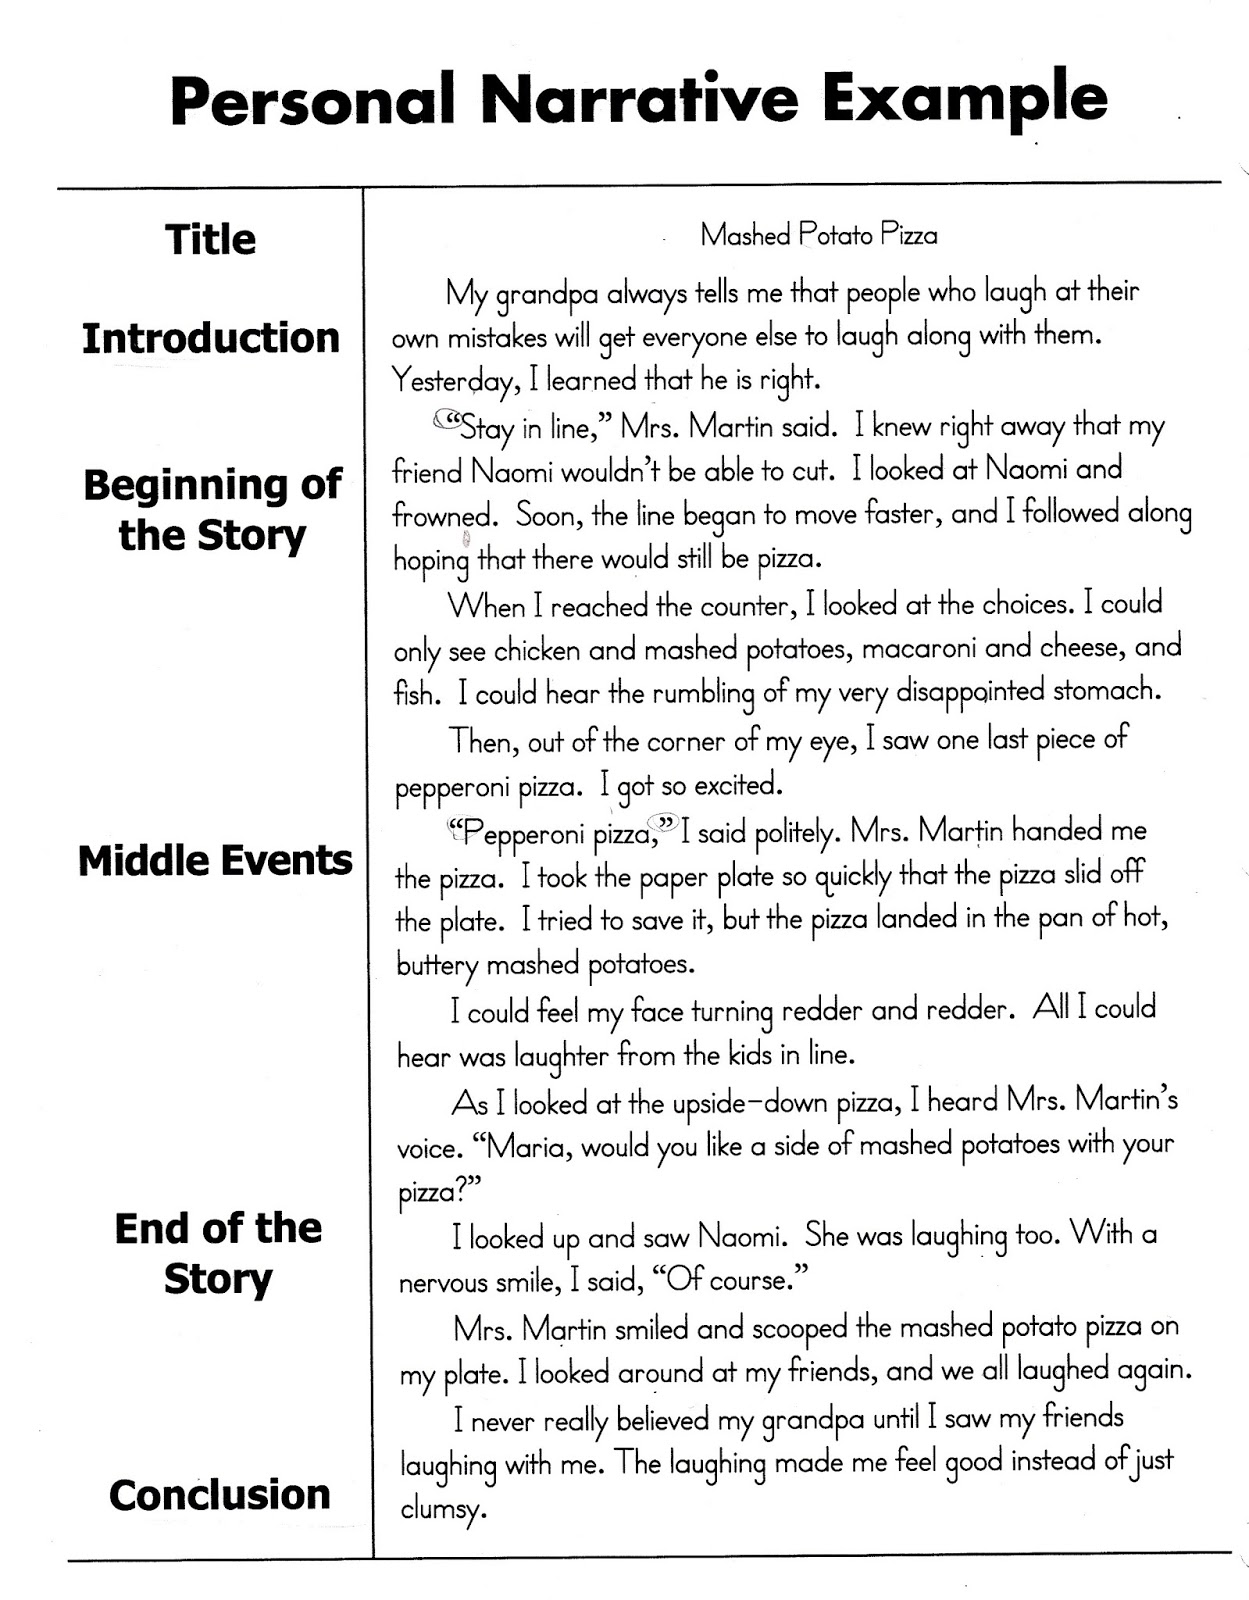 Writing a Narrative Essay: Developing an Outline